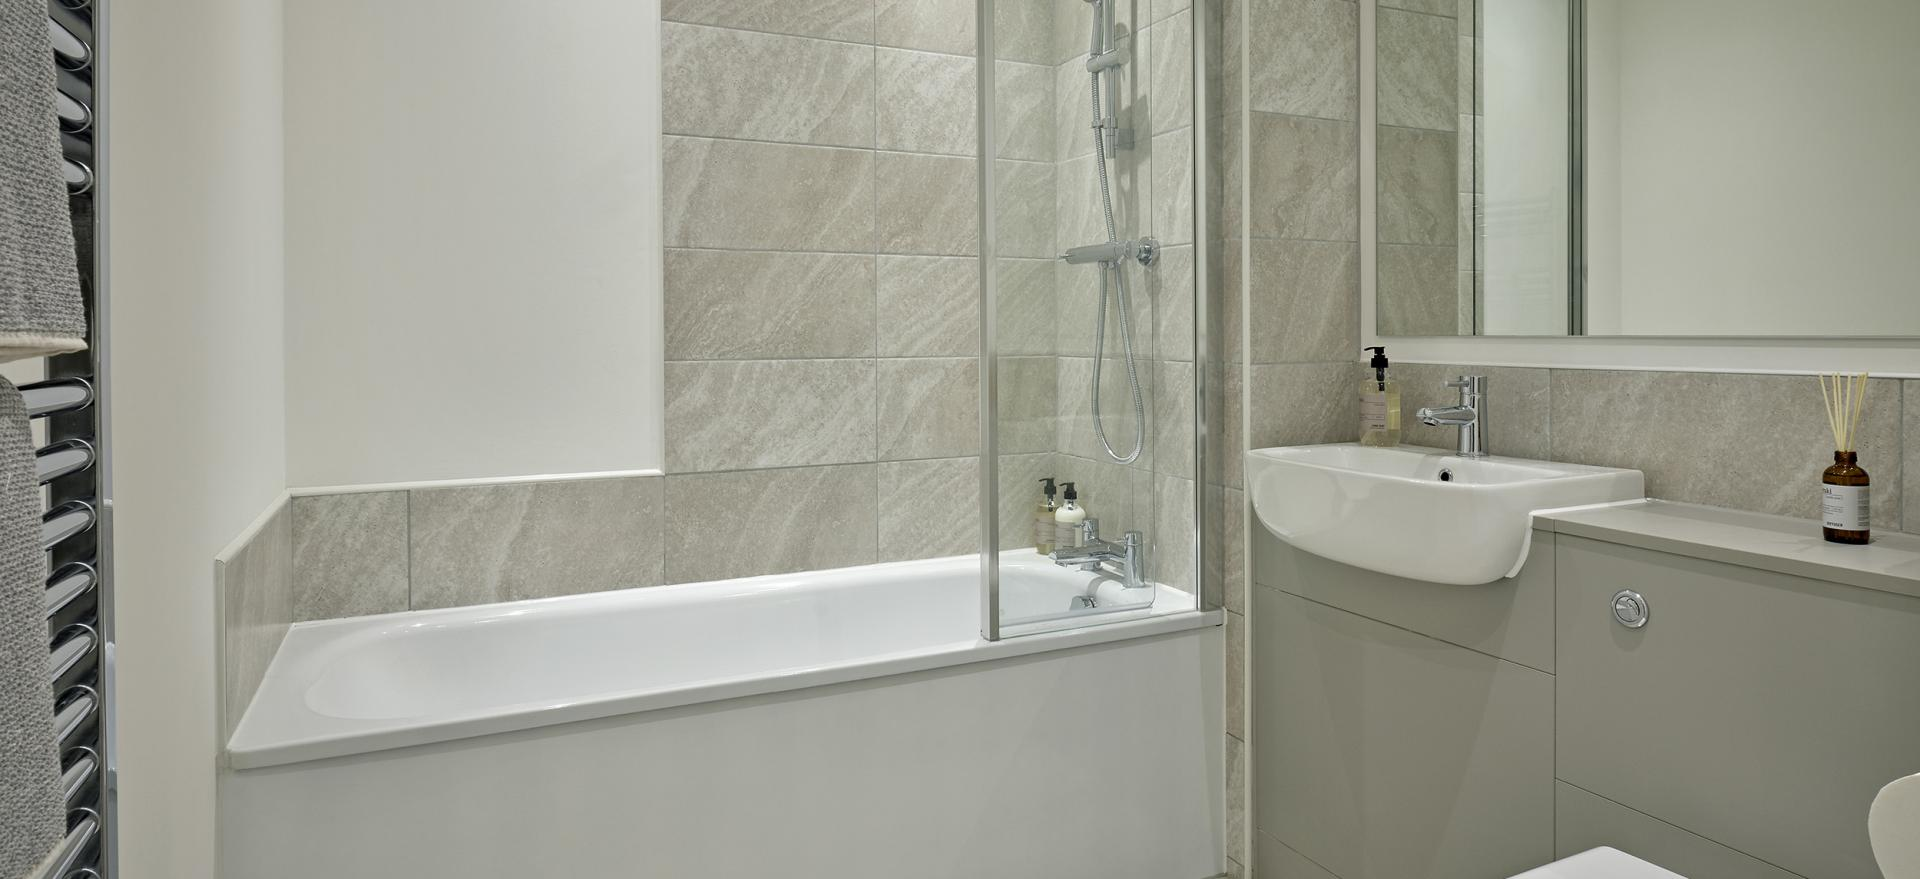 Bathroom at Manchester Media City Apartments By Charles Hope - Citybase Apartments